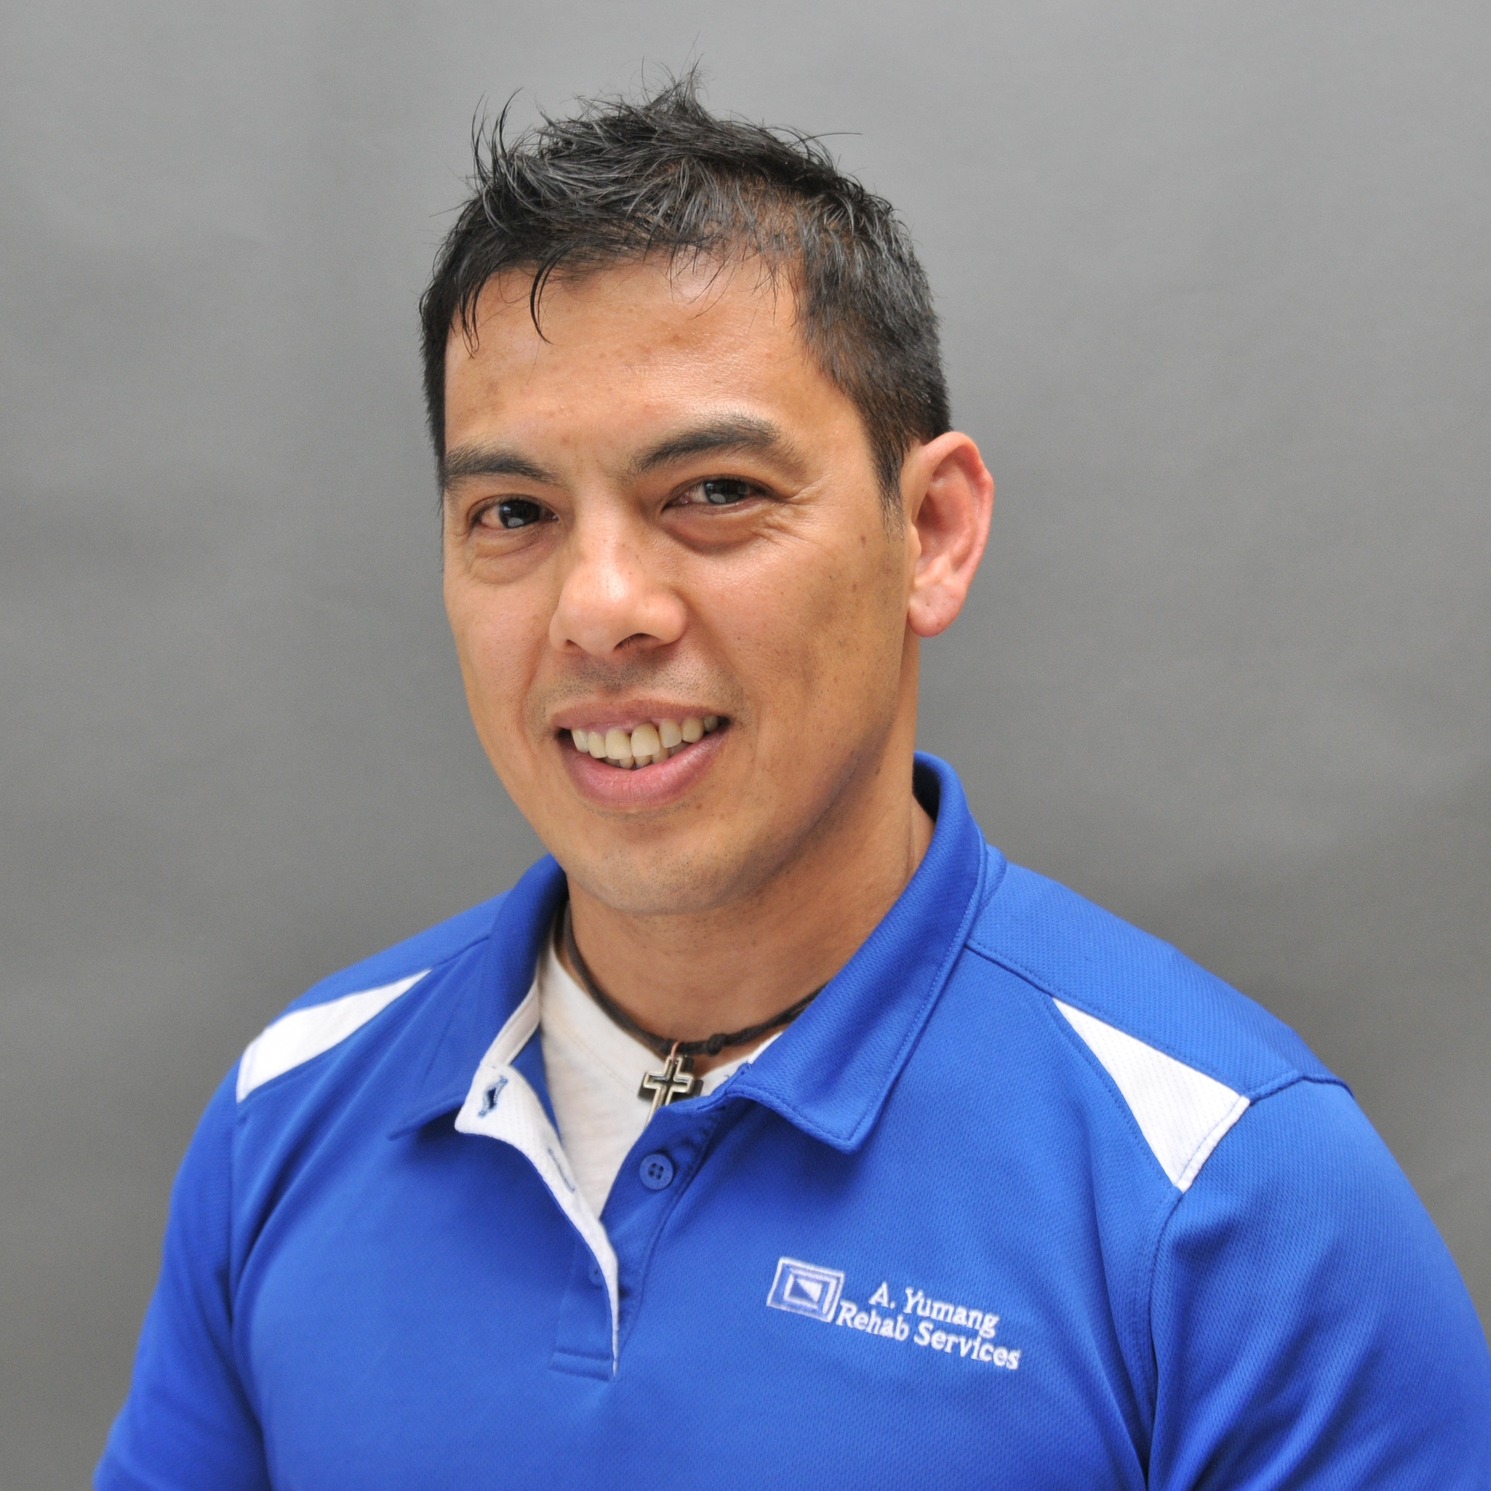 Ray Yumang  PT/LMT  Ray Yumang has been a physical therapist for twenty-five years and is also licensed in massage therapy. Trained in numerous approaches and techniques, he specializes in treatment for lymphedema, vestibular rehab, neurodevelopmental technique, Graston method, and the Maitland approach to name a few. An avid musician, health enthusiast, and sports fan, Ray likes to focus on treating the patient first and making them stronger.